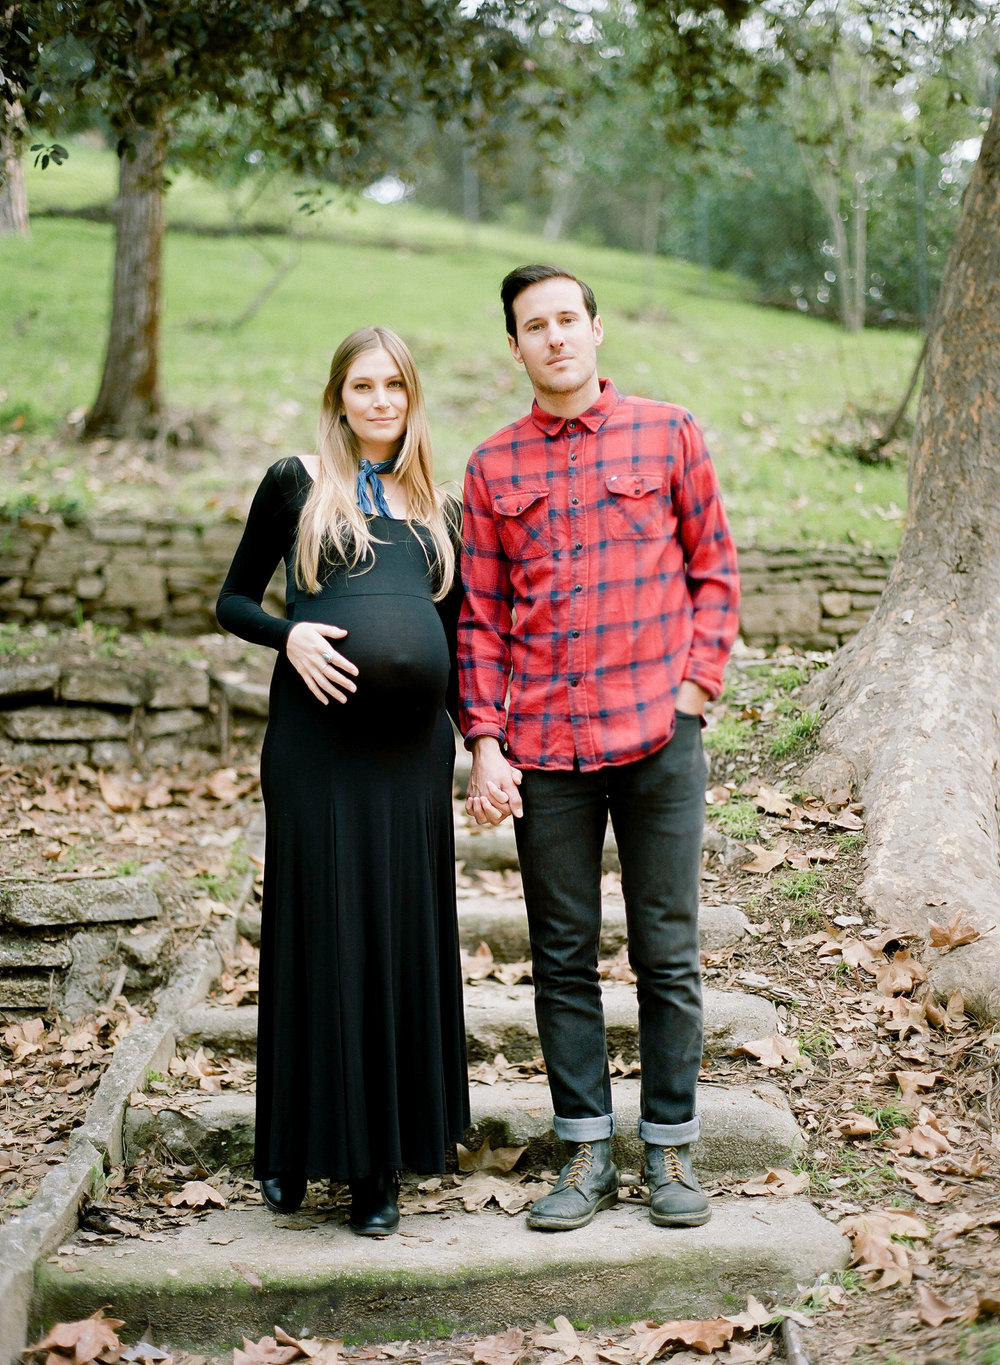 Chrissy & David Maternity Session-37.jpg